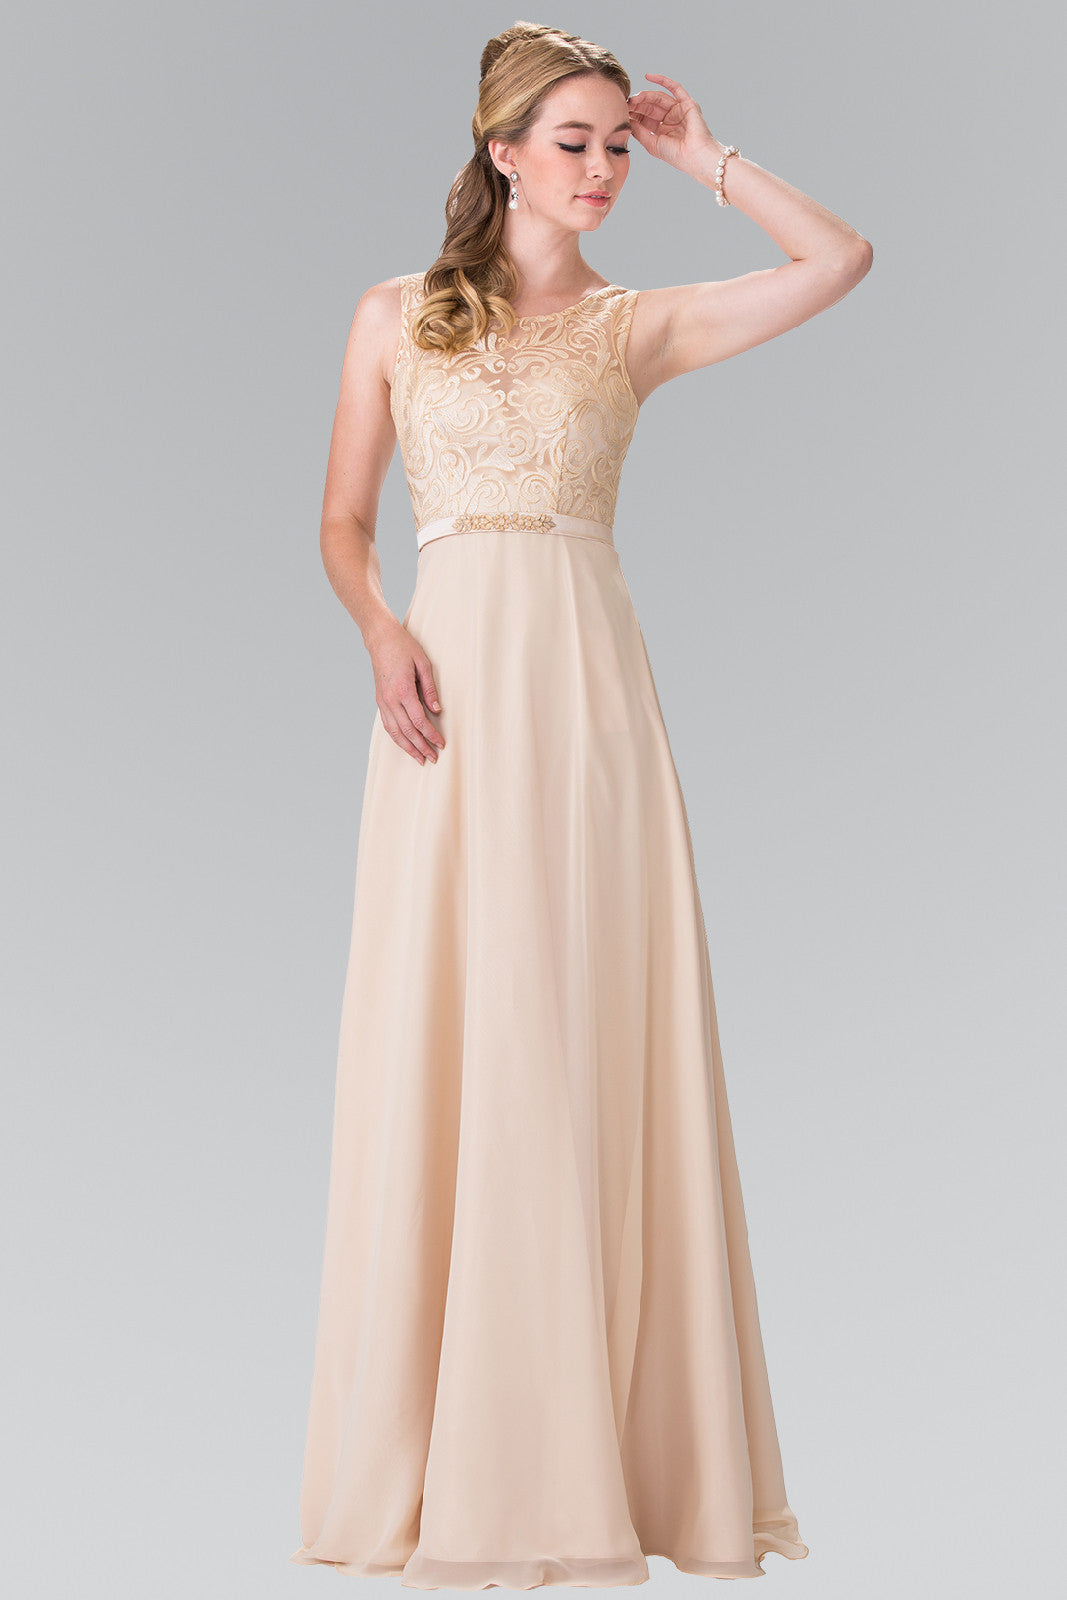 Lace bodice long chiffon bridesmaid dress gl 2364 simply fab dress lace bodice long chiffon bridesmaid dress gl 2364 simply fab dress ombrellifo Choice Image